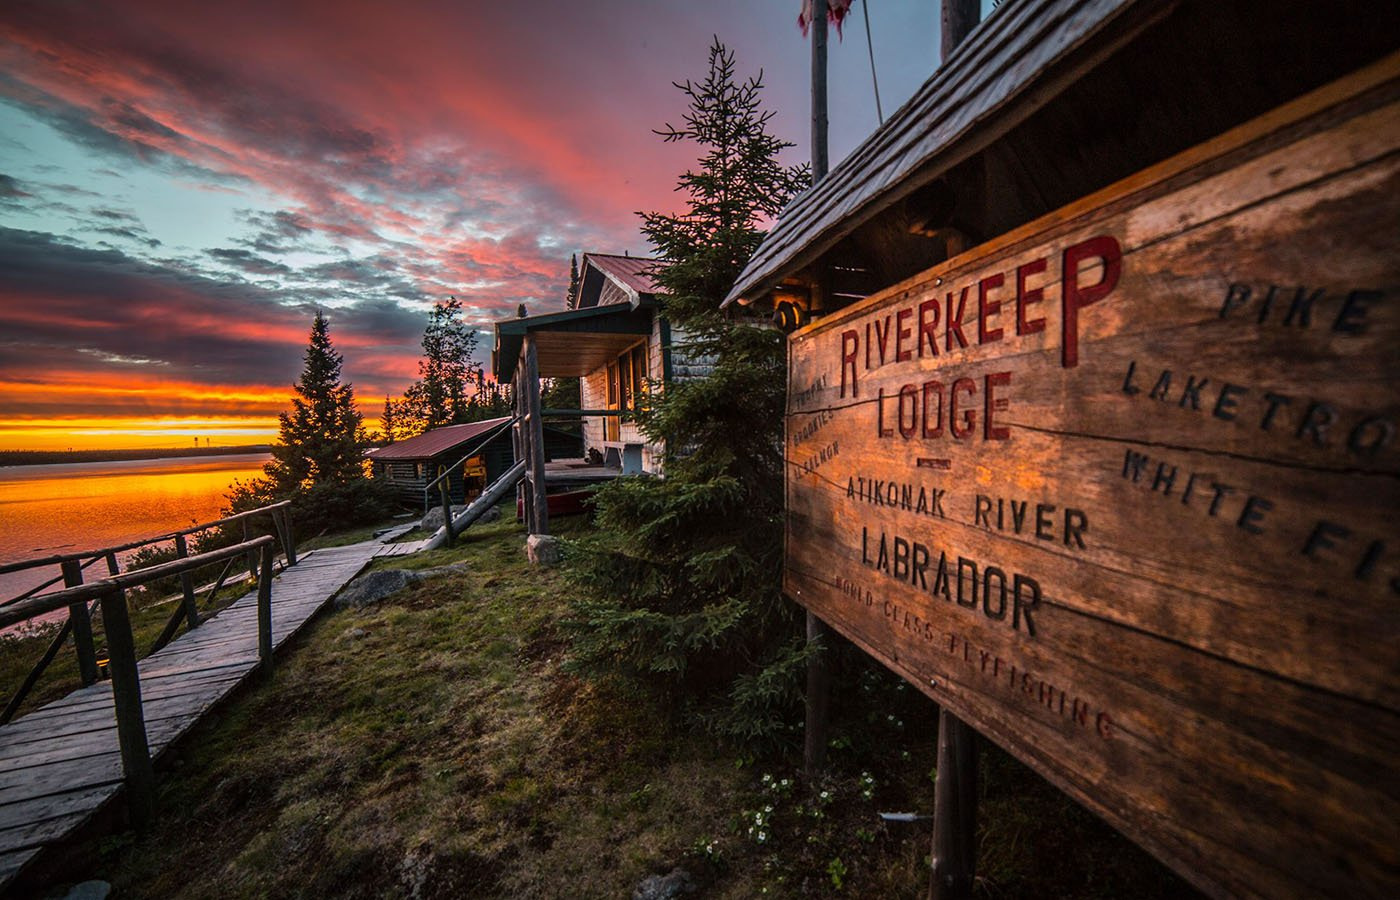 Riverkeep Lodge Canada